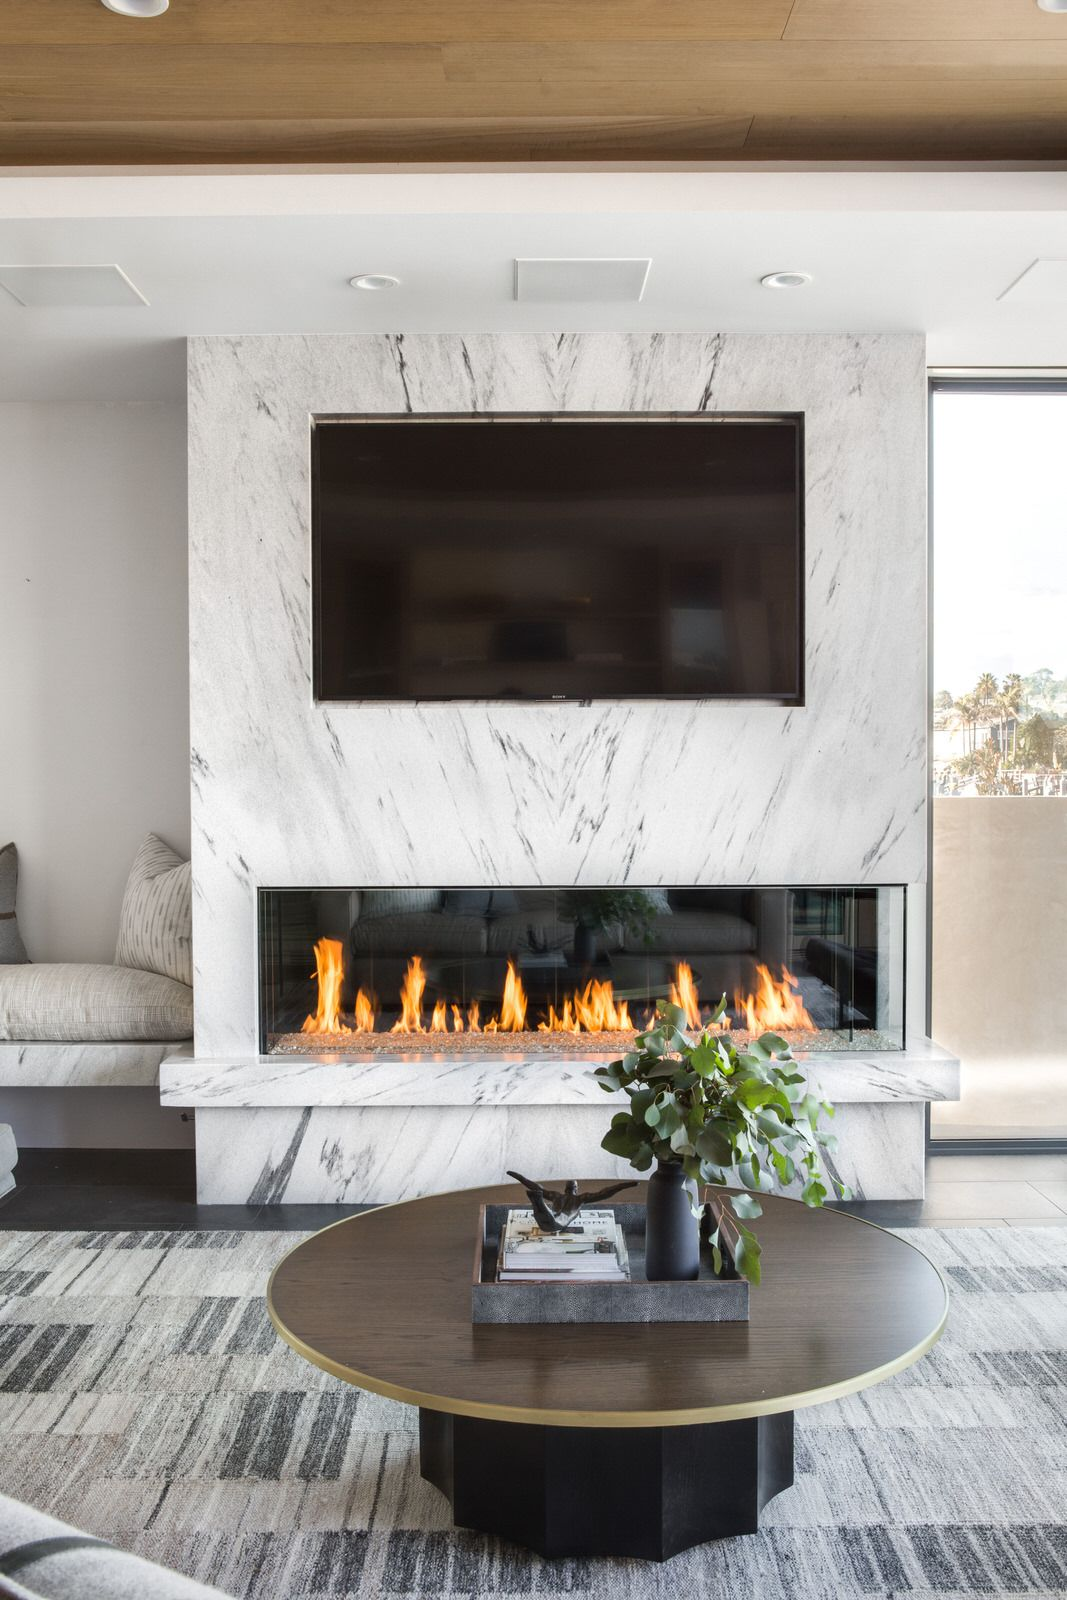 marble fireplace tv stand on all marble fireplace surround with inset tv so chic and sophisticated design by chad mellon minimalist fireplace contemporary fireplace home fireplace pinterest